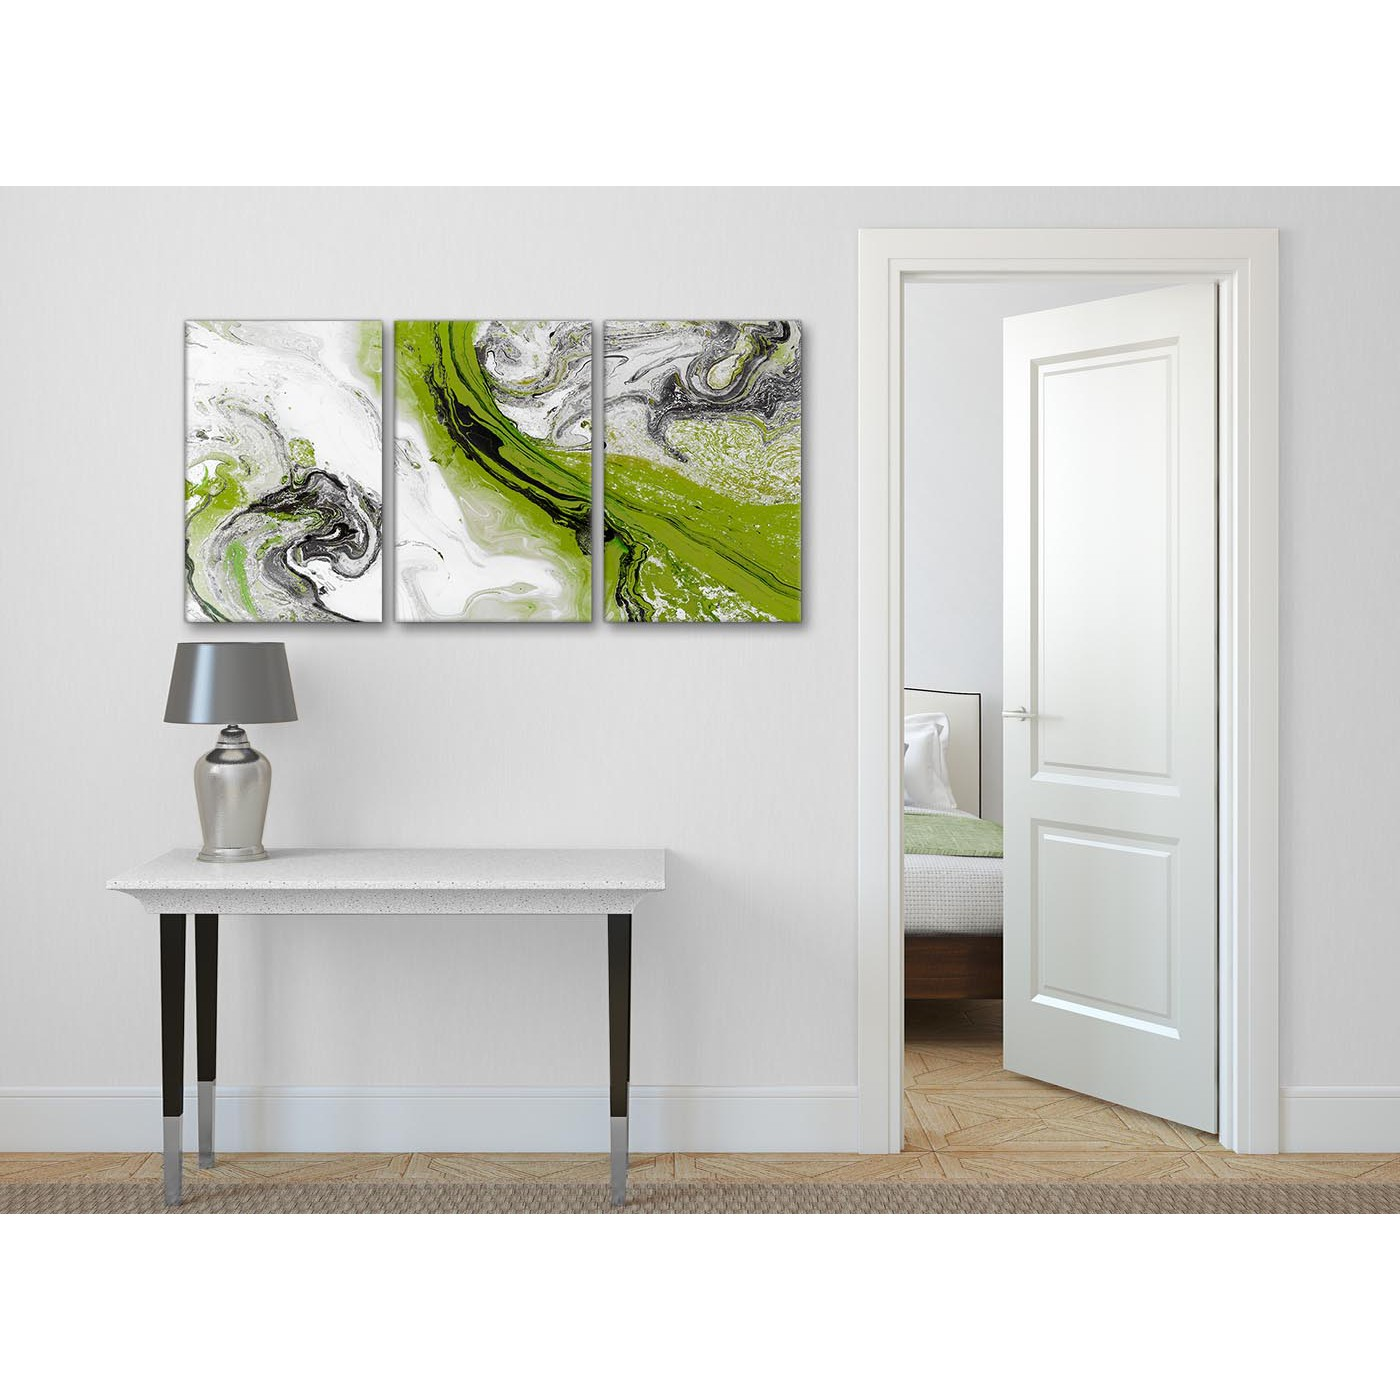 Bedroom Canvas Wall Art Uk: Lime Green And Grey Swirl Bedroom Canvas Pictures